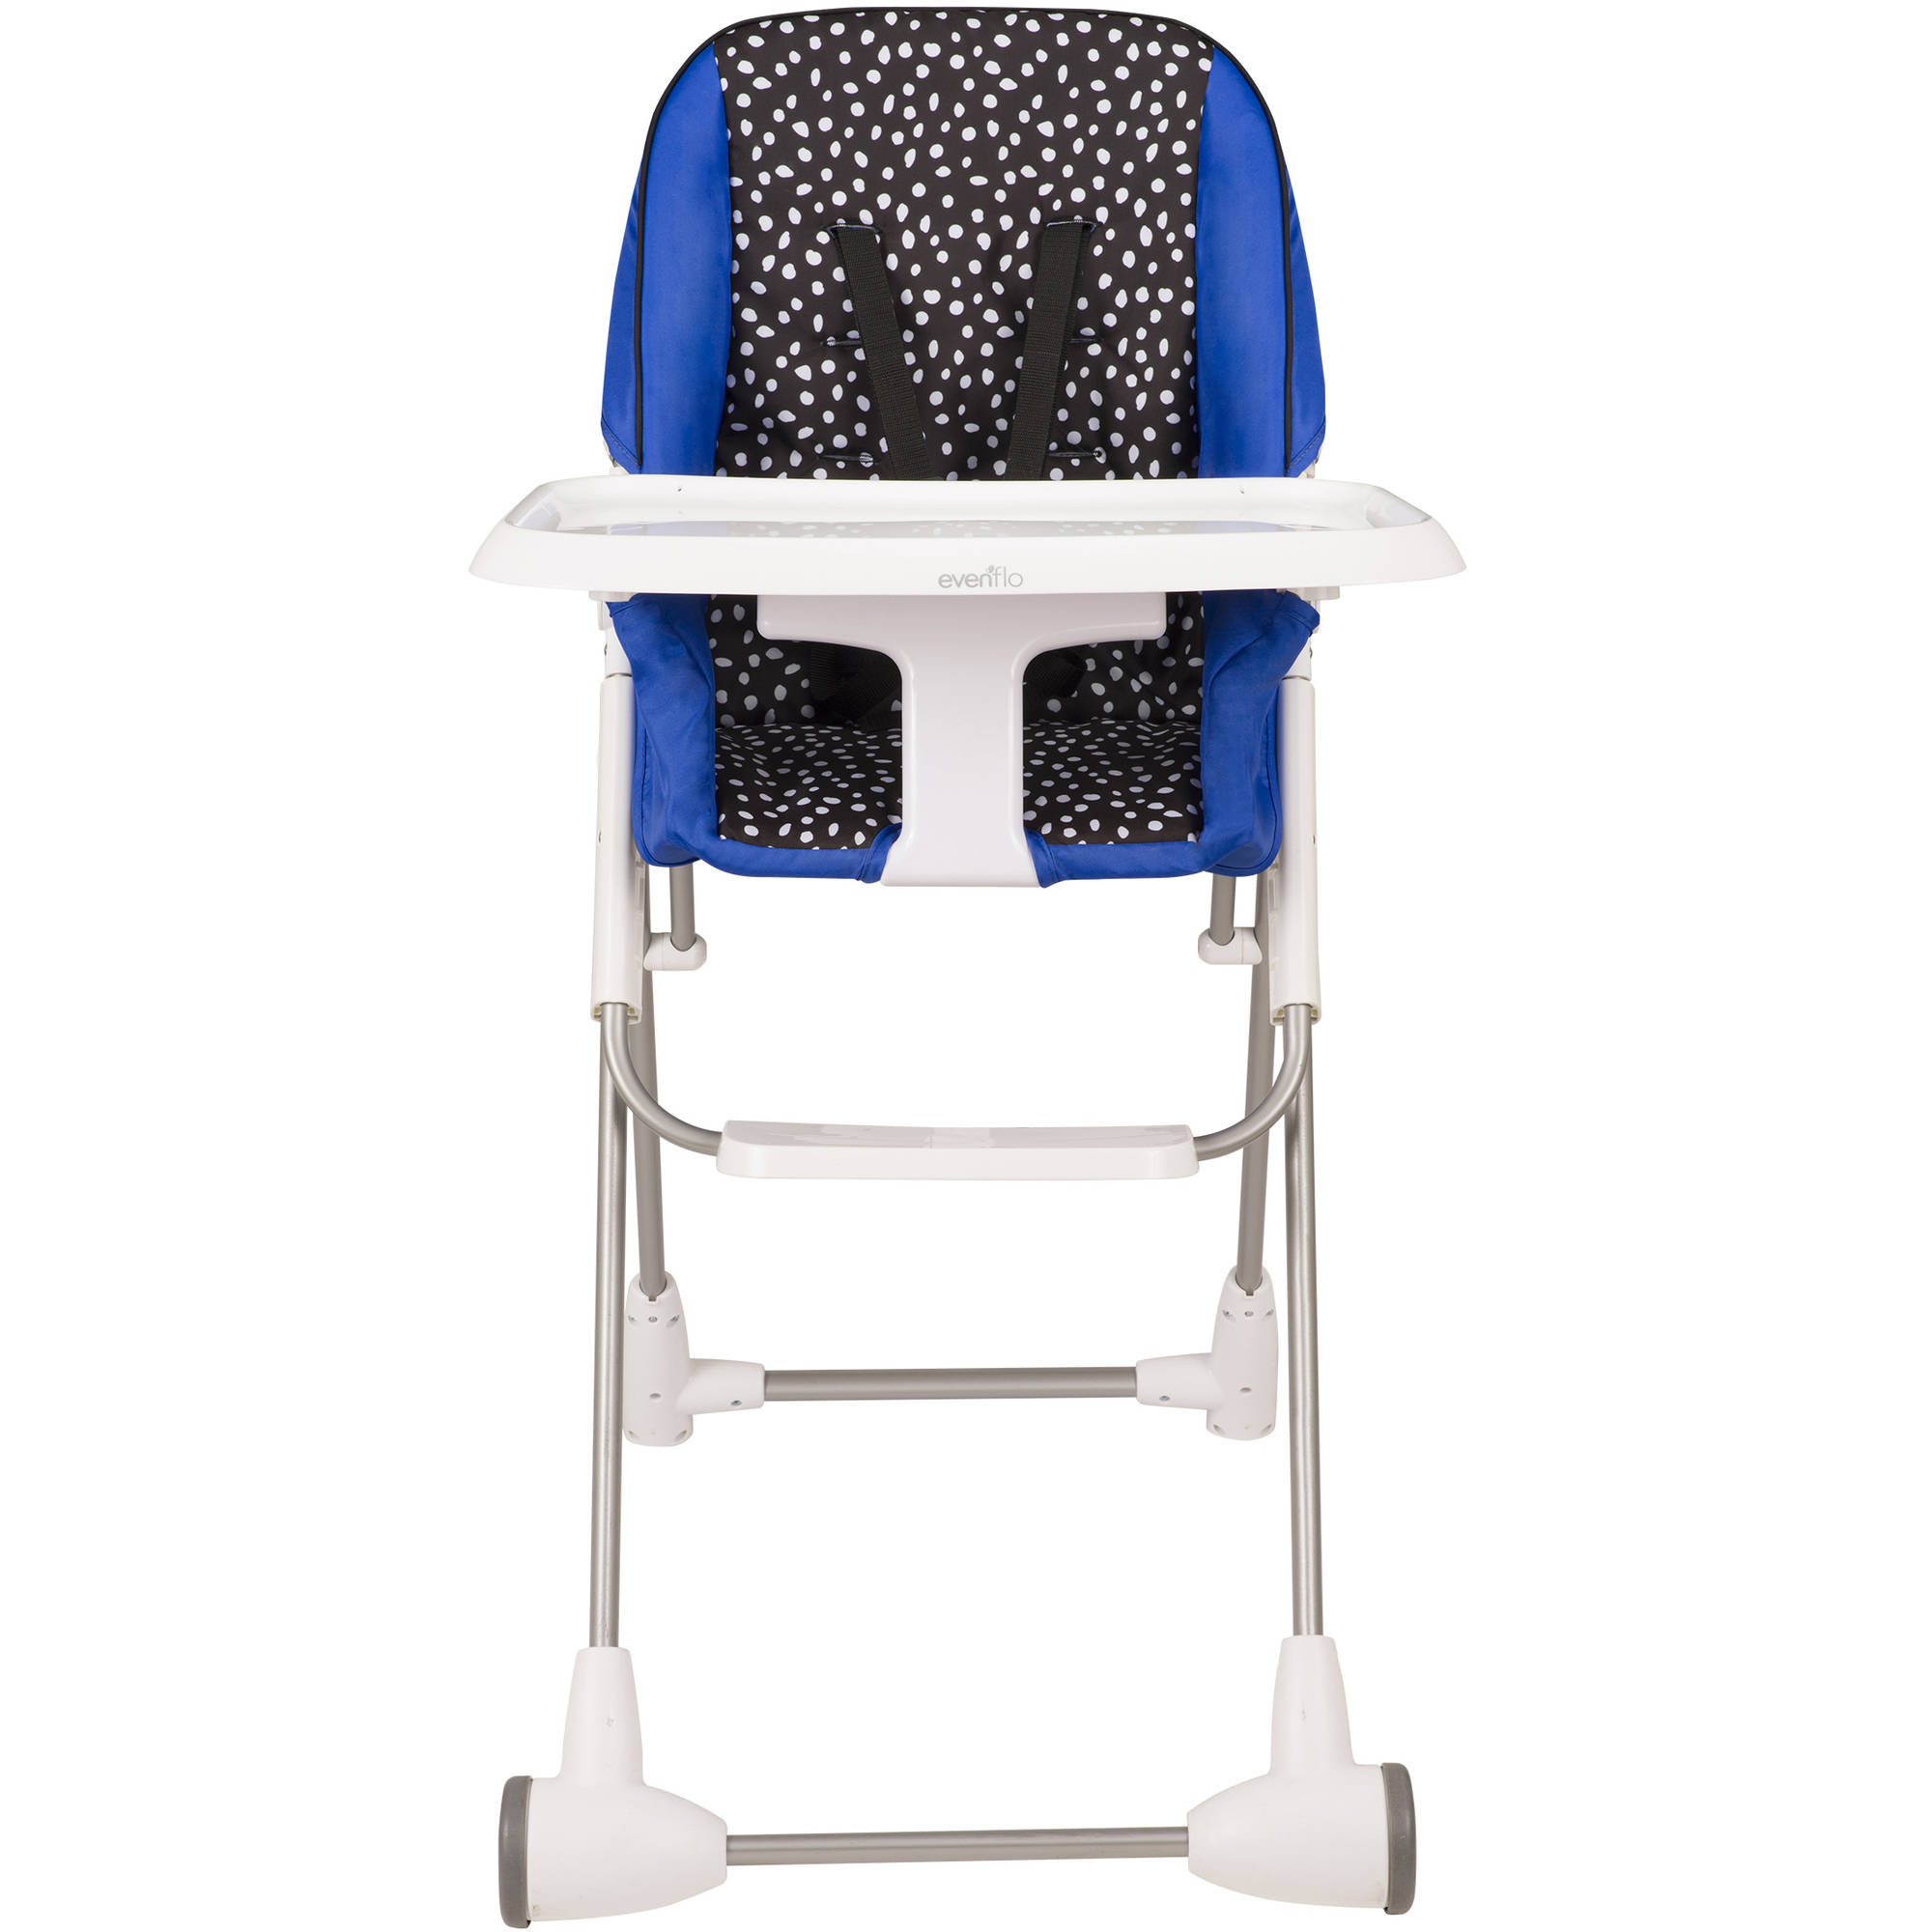 Evenflo Symmetry Flat Fold High Chair, Hayden Dot